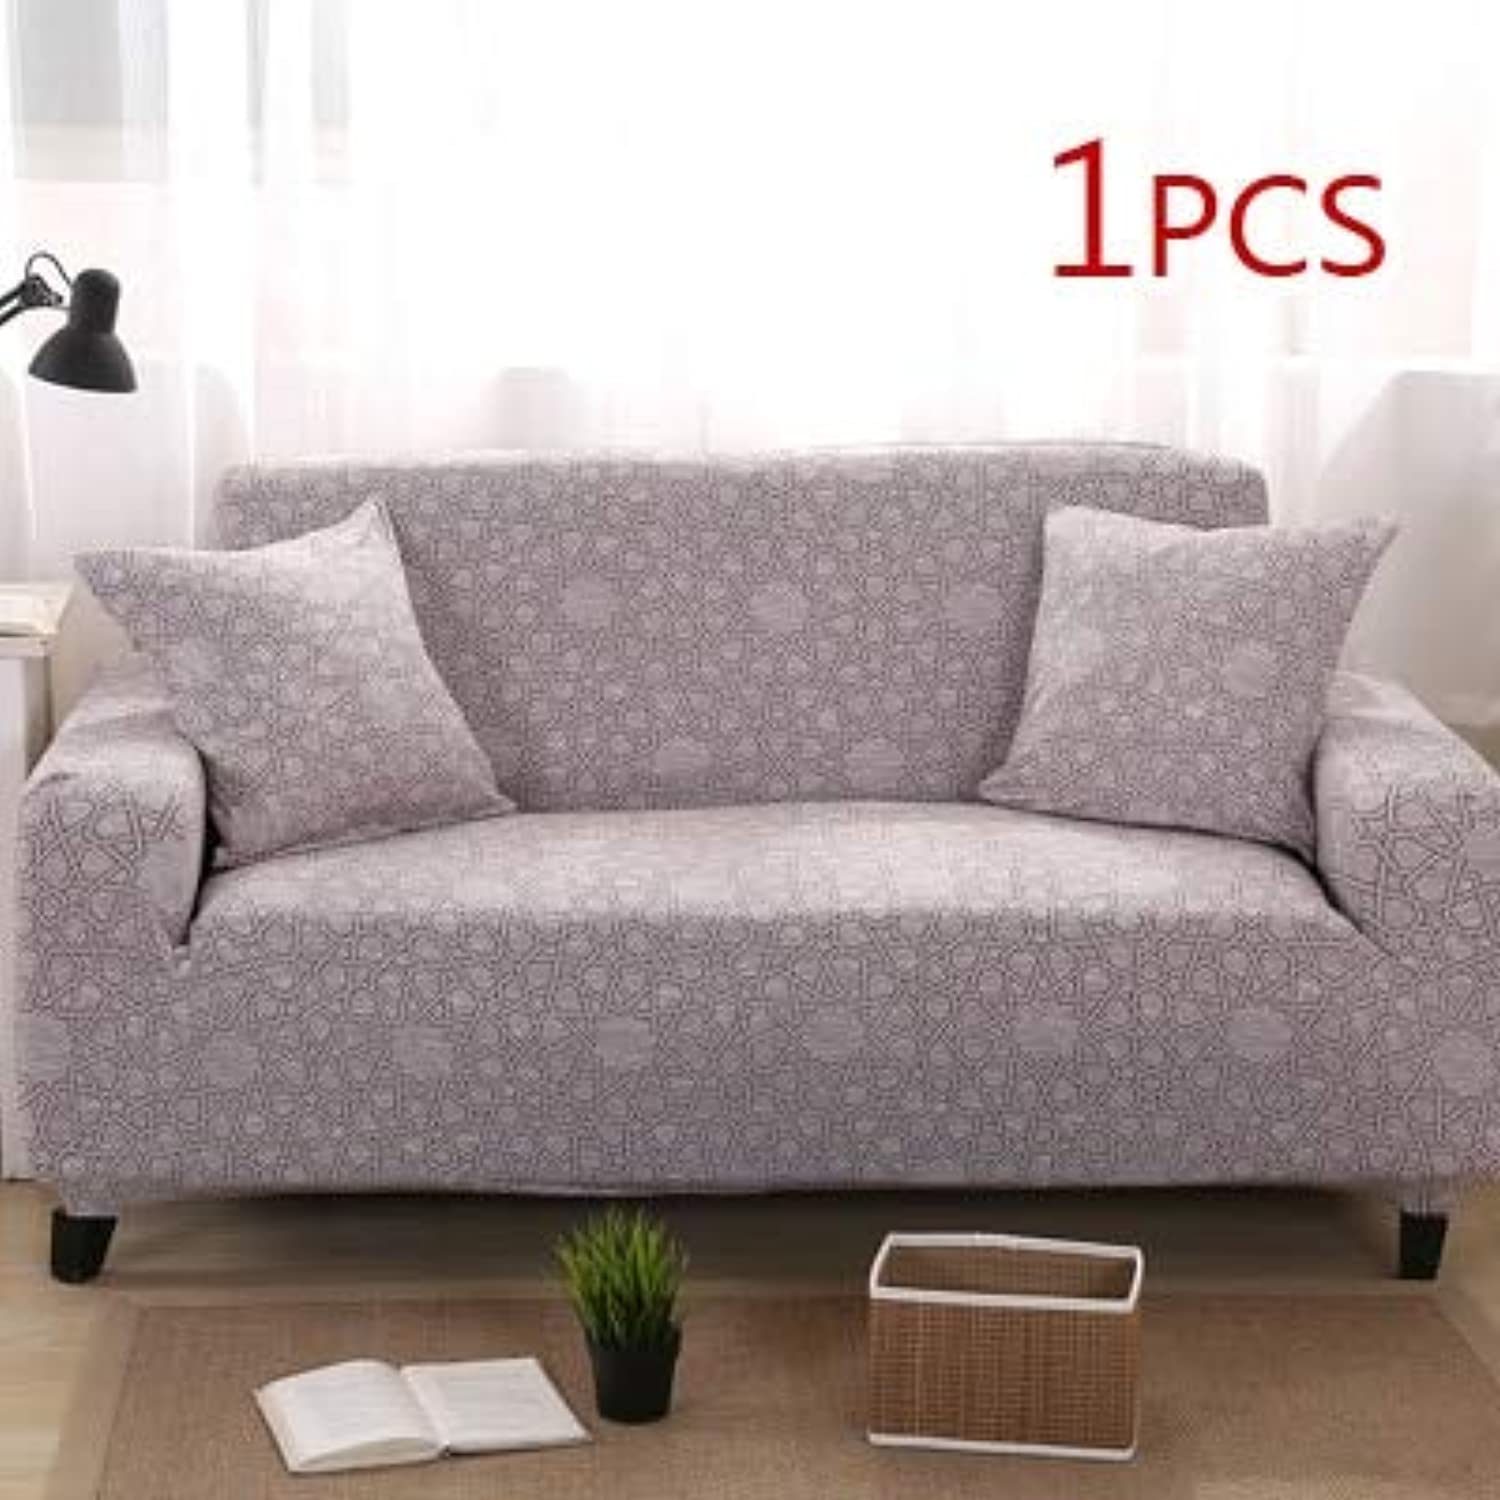 Modern Sofa Cover All-Inclusive Slip-Resistant Cheap Sofa Towel Elastic Corner Sofa Sectional Covers Spandex Sofa Slipcover 1PC   21, Two-Seater